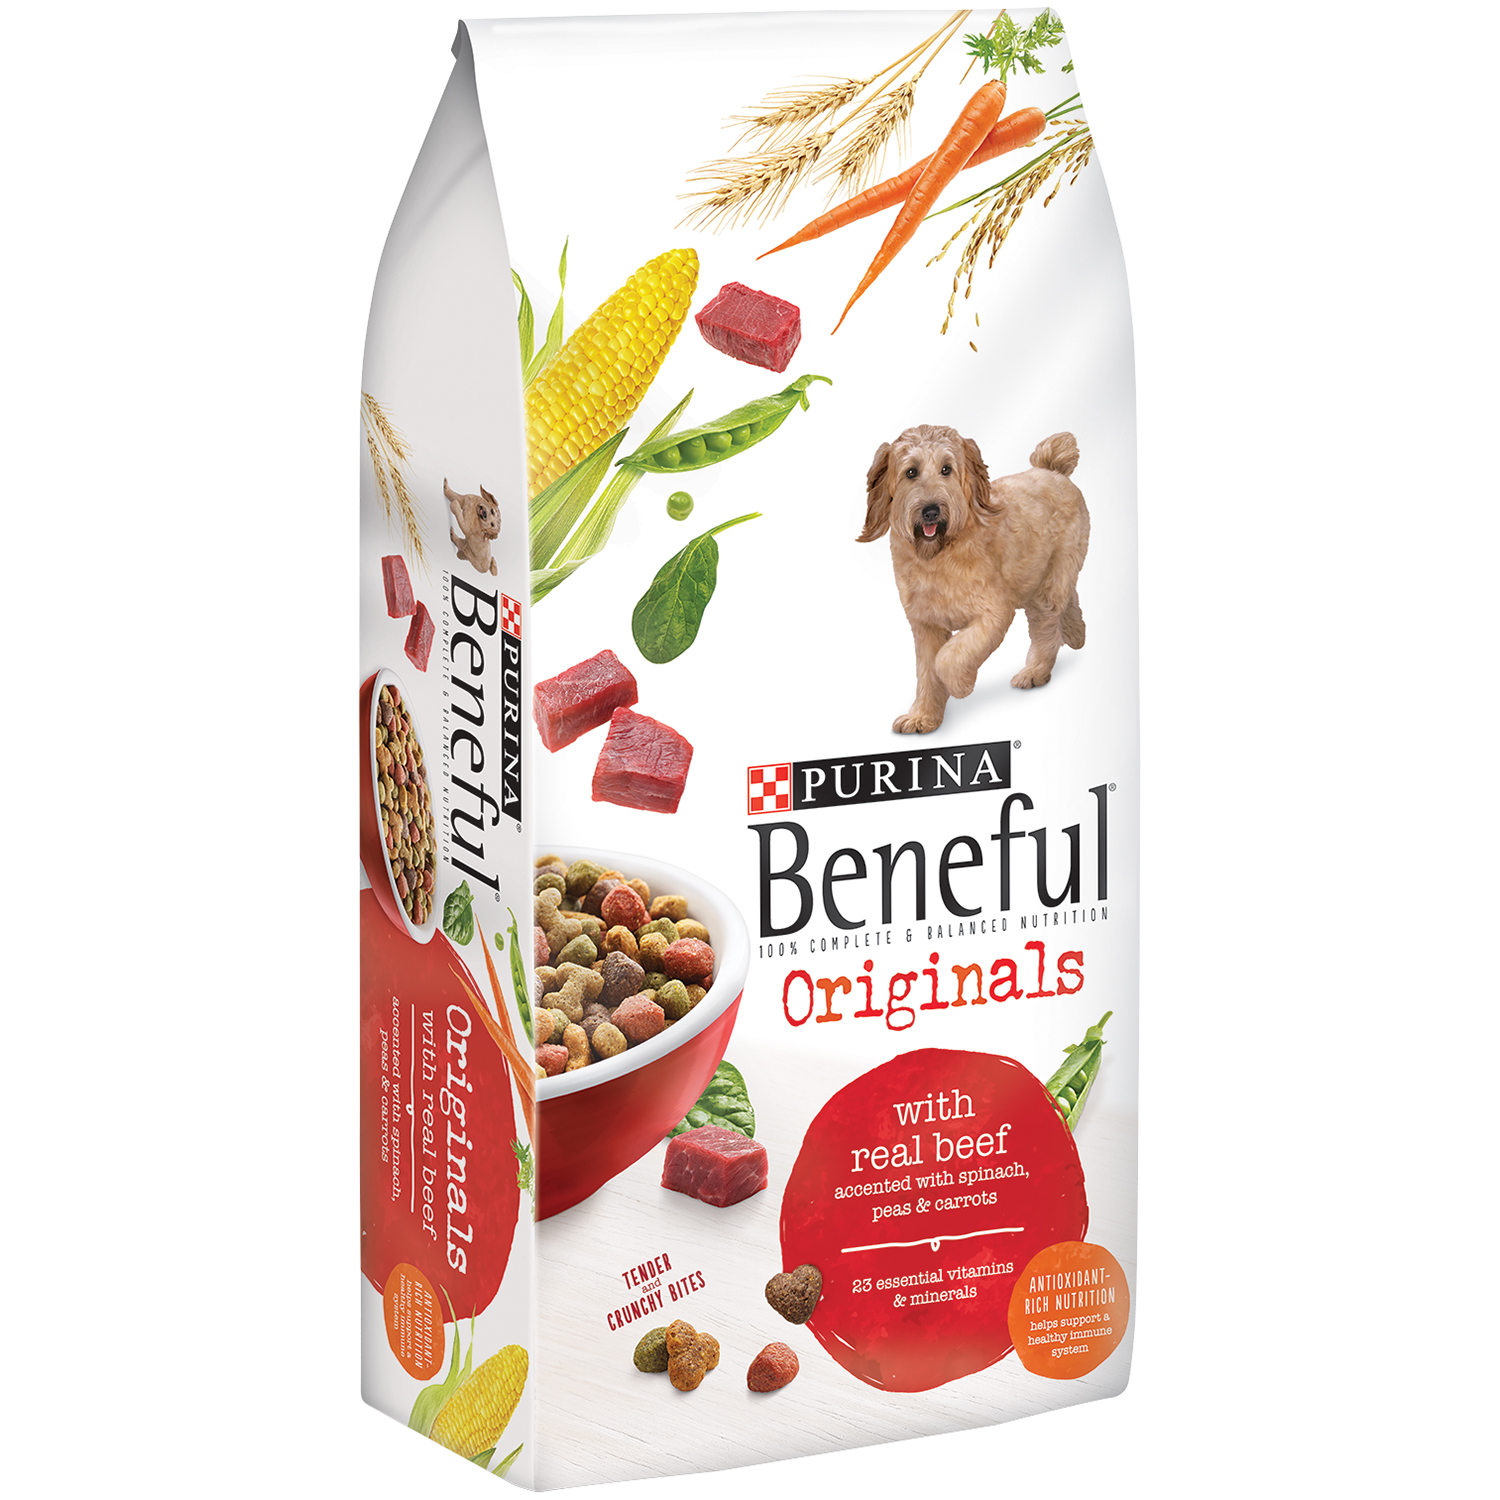 Purina Beneful Originals With Real Beef Dog Food 15.5 lb. Bag